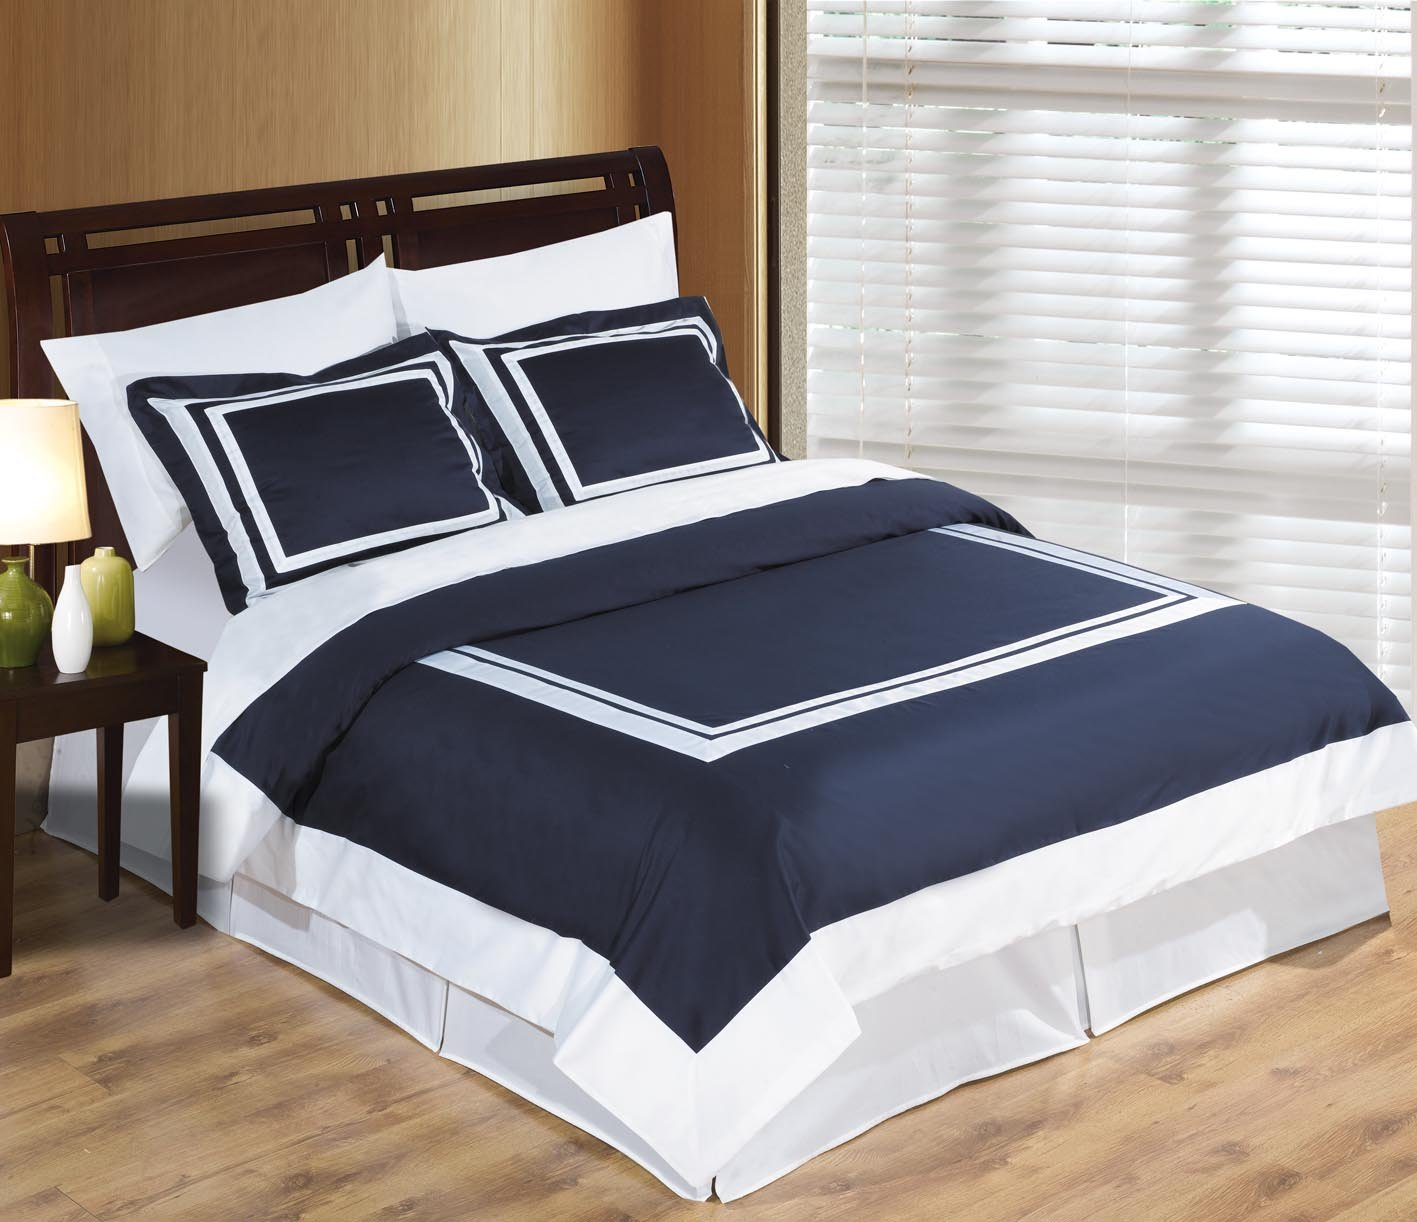 sheetsnthings 4PC Full/Queen size Navy with White Hotel bedding set including 3pc duvet cover set+ 1 pc Down Alternative Comforter at Sears.com